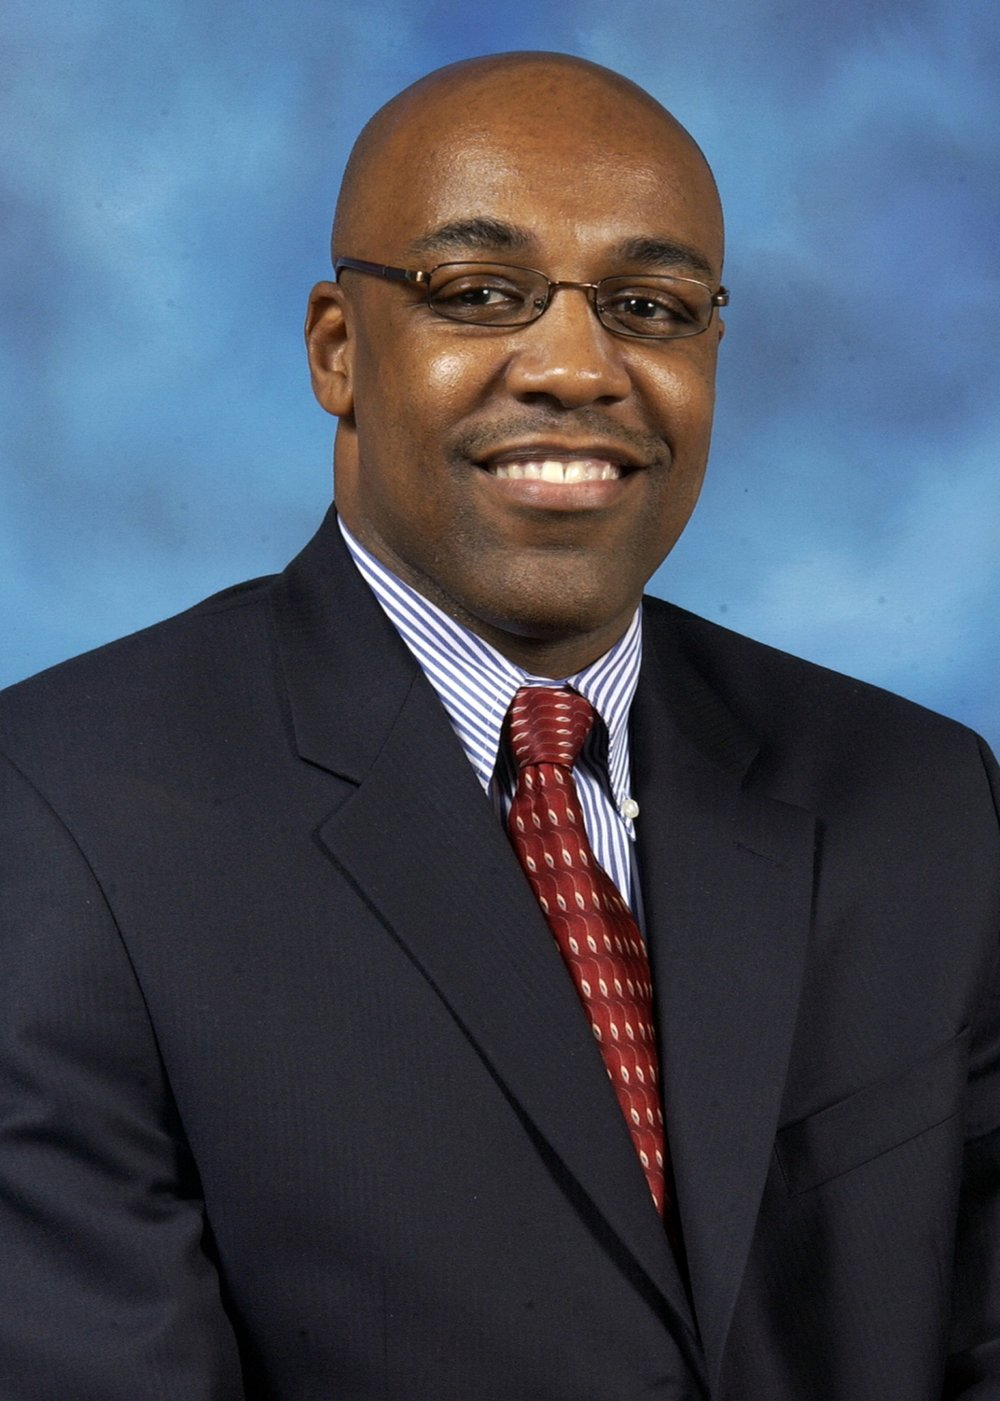 Kwame Raoul for Attorney General